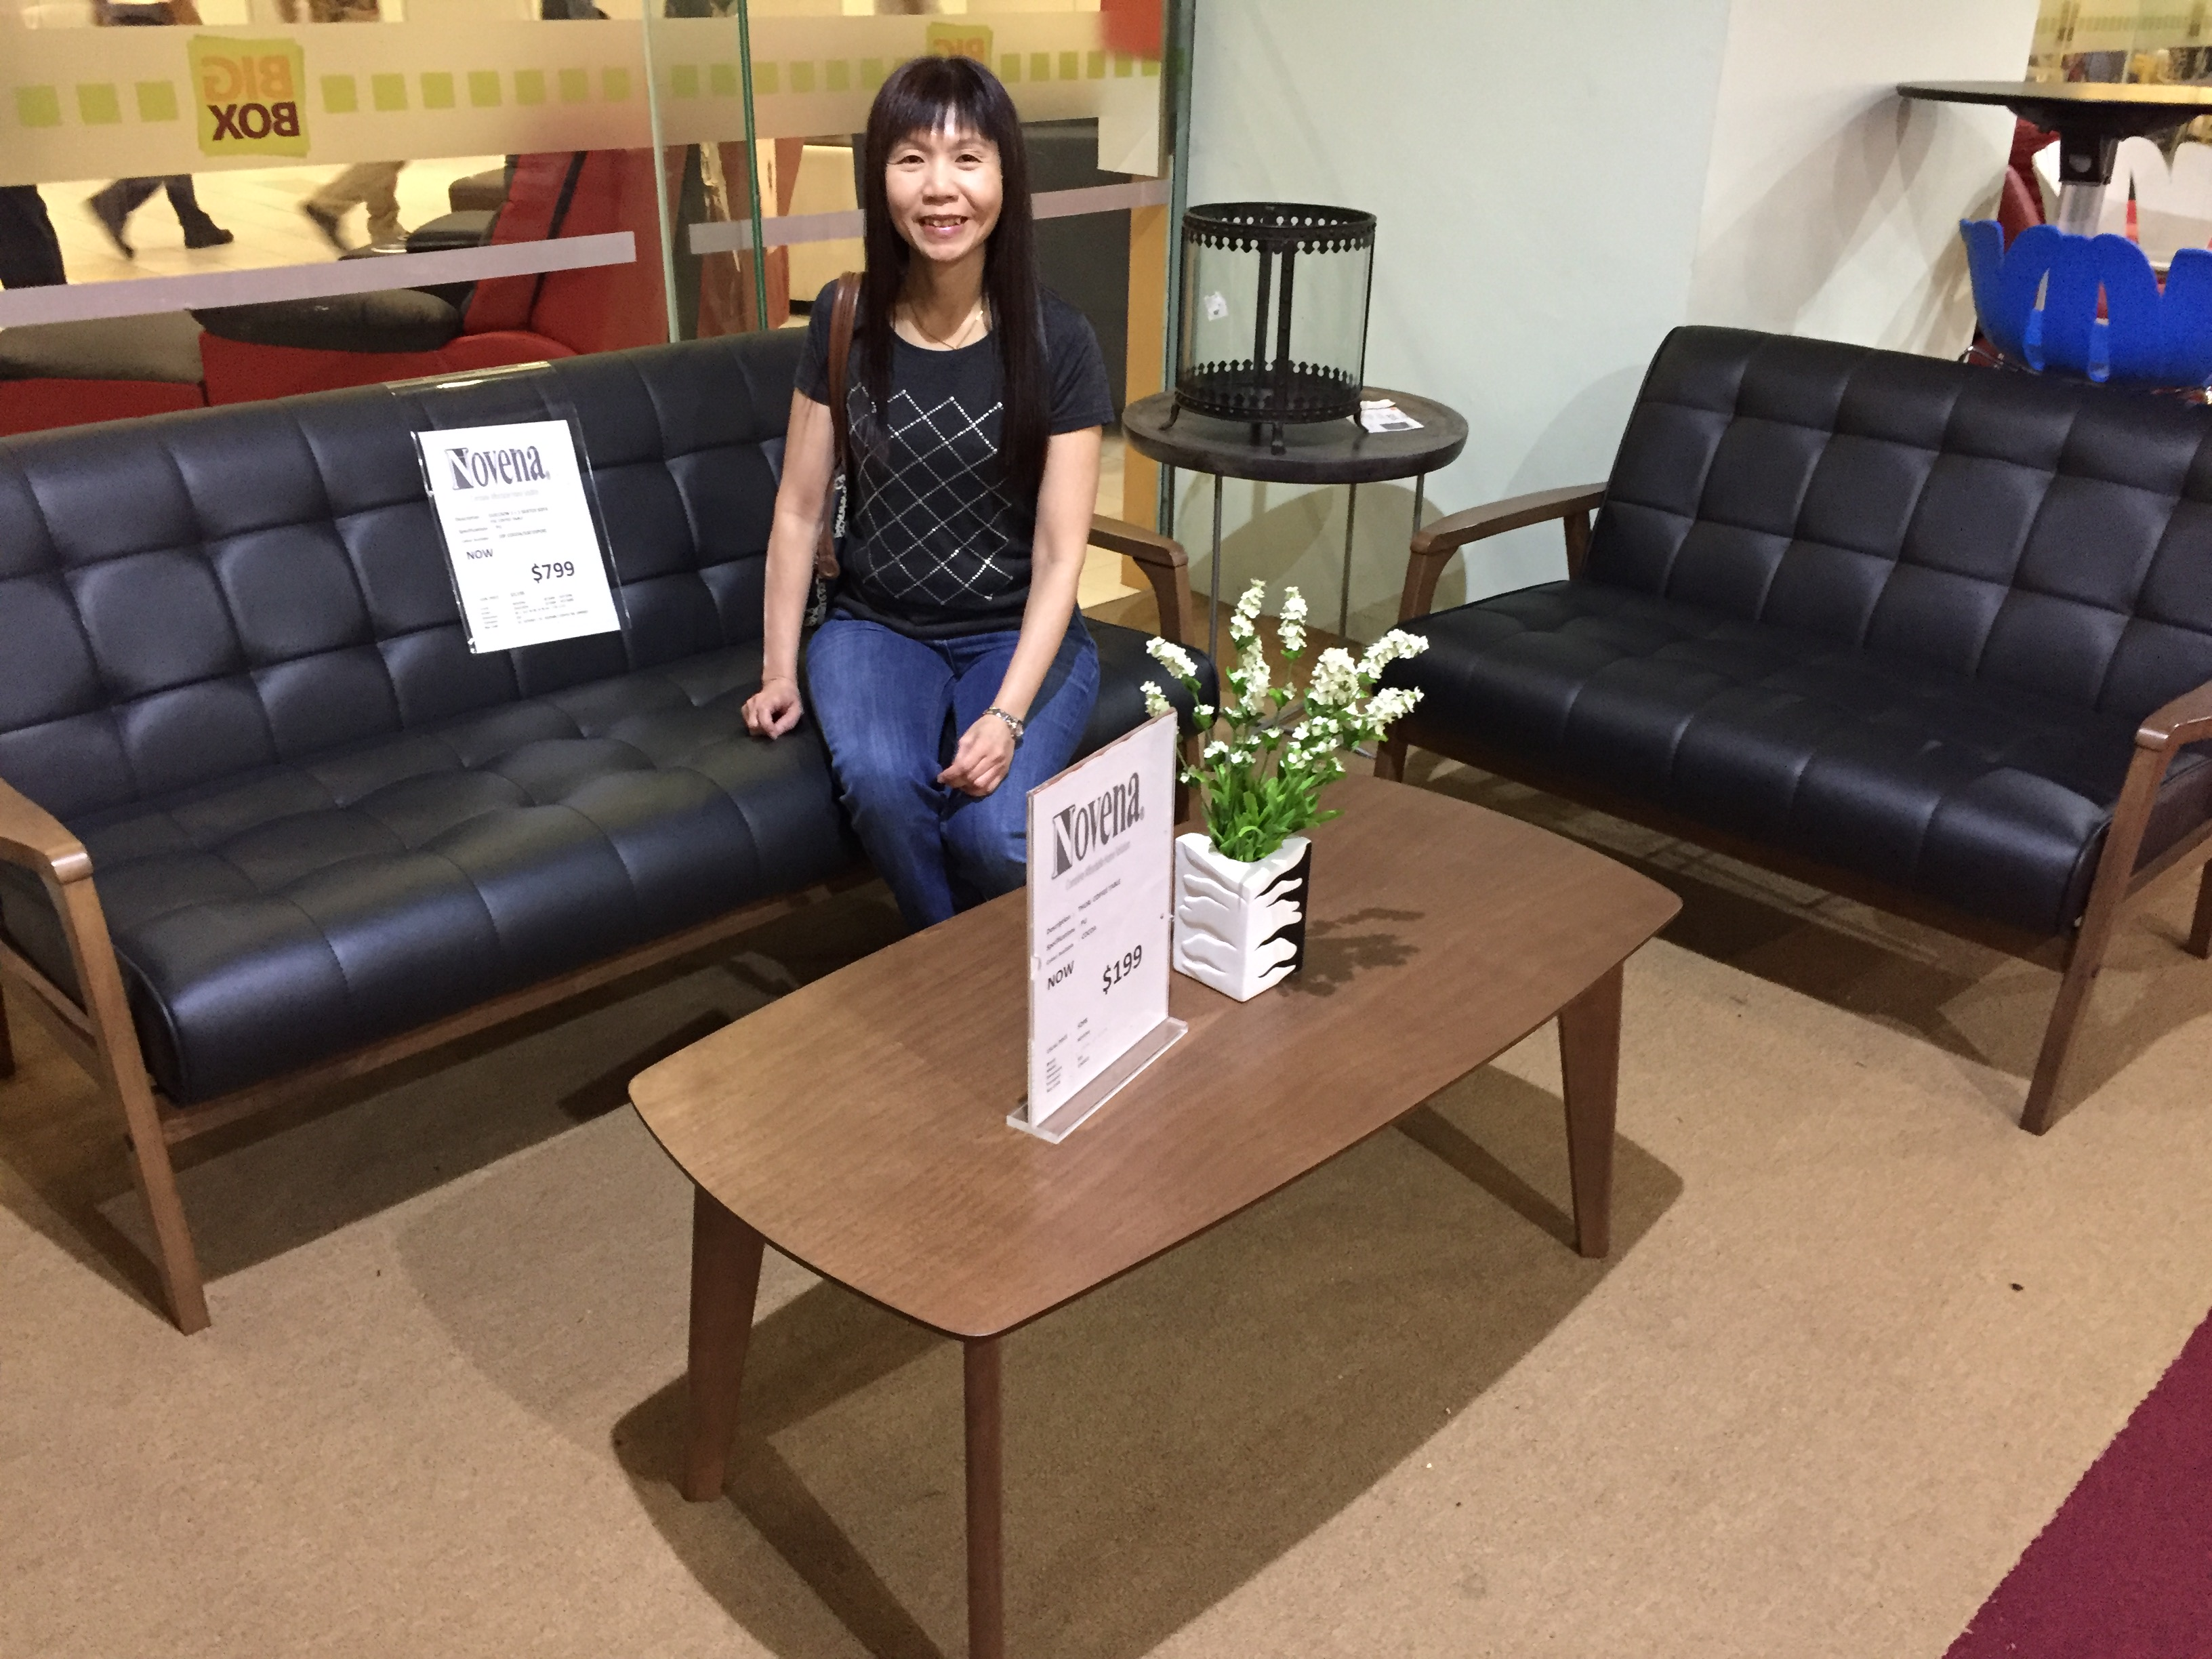 S$799 is for a 3-seater, a 2-seater, and a coffee table.